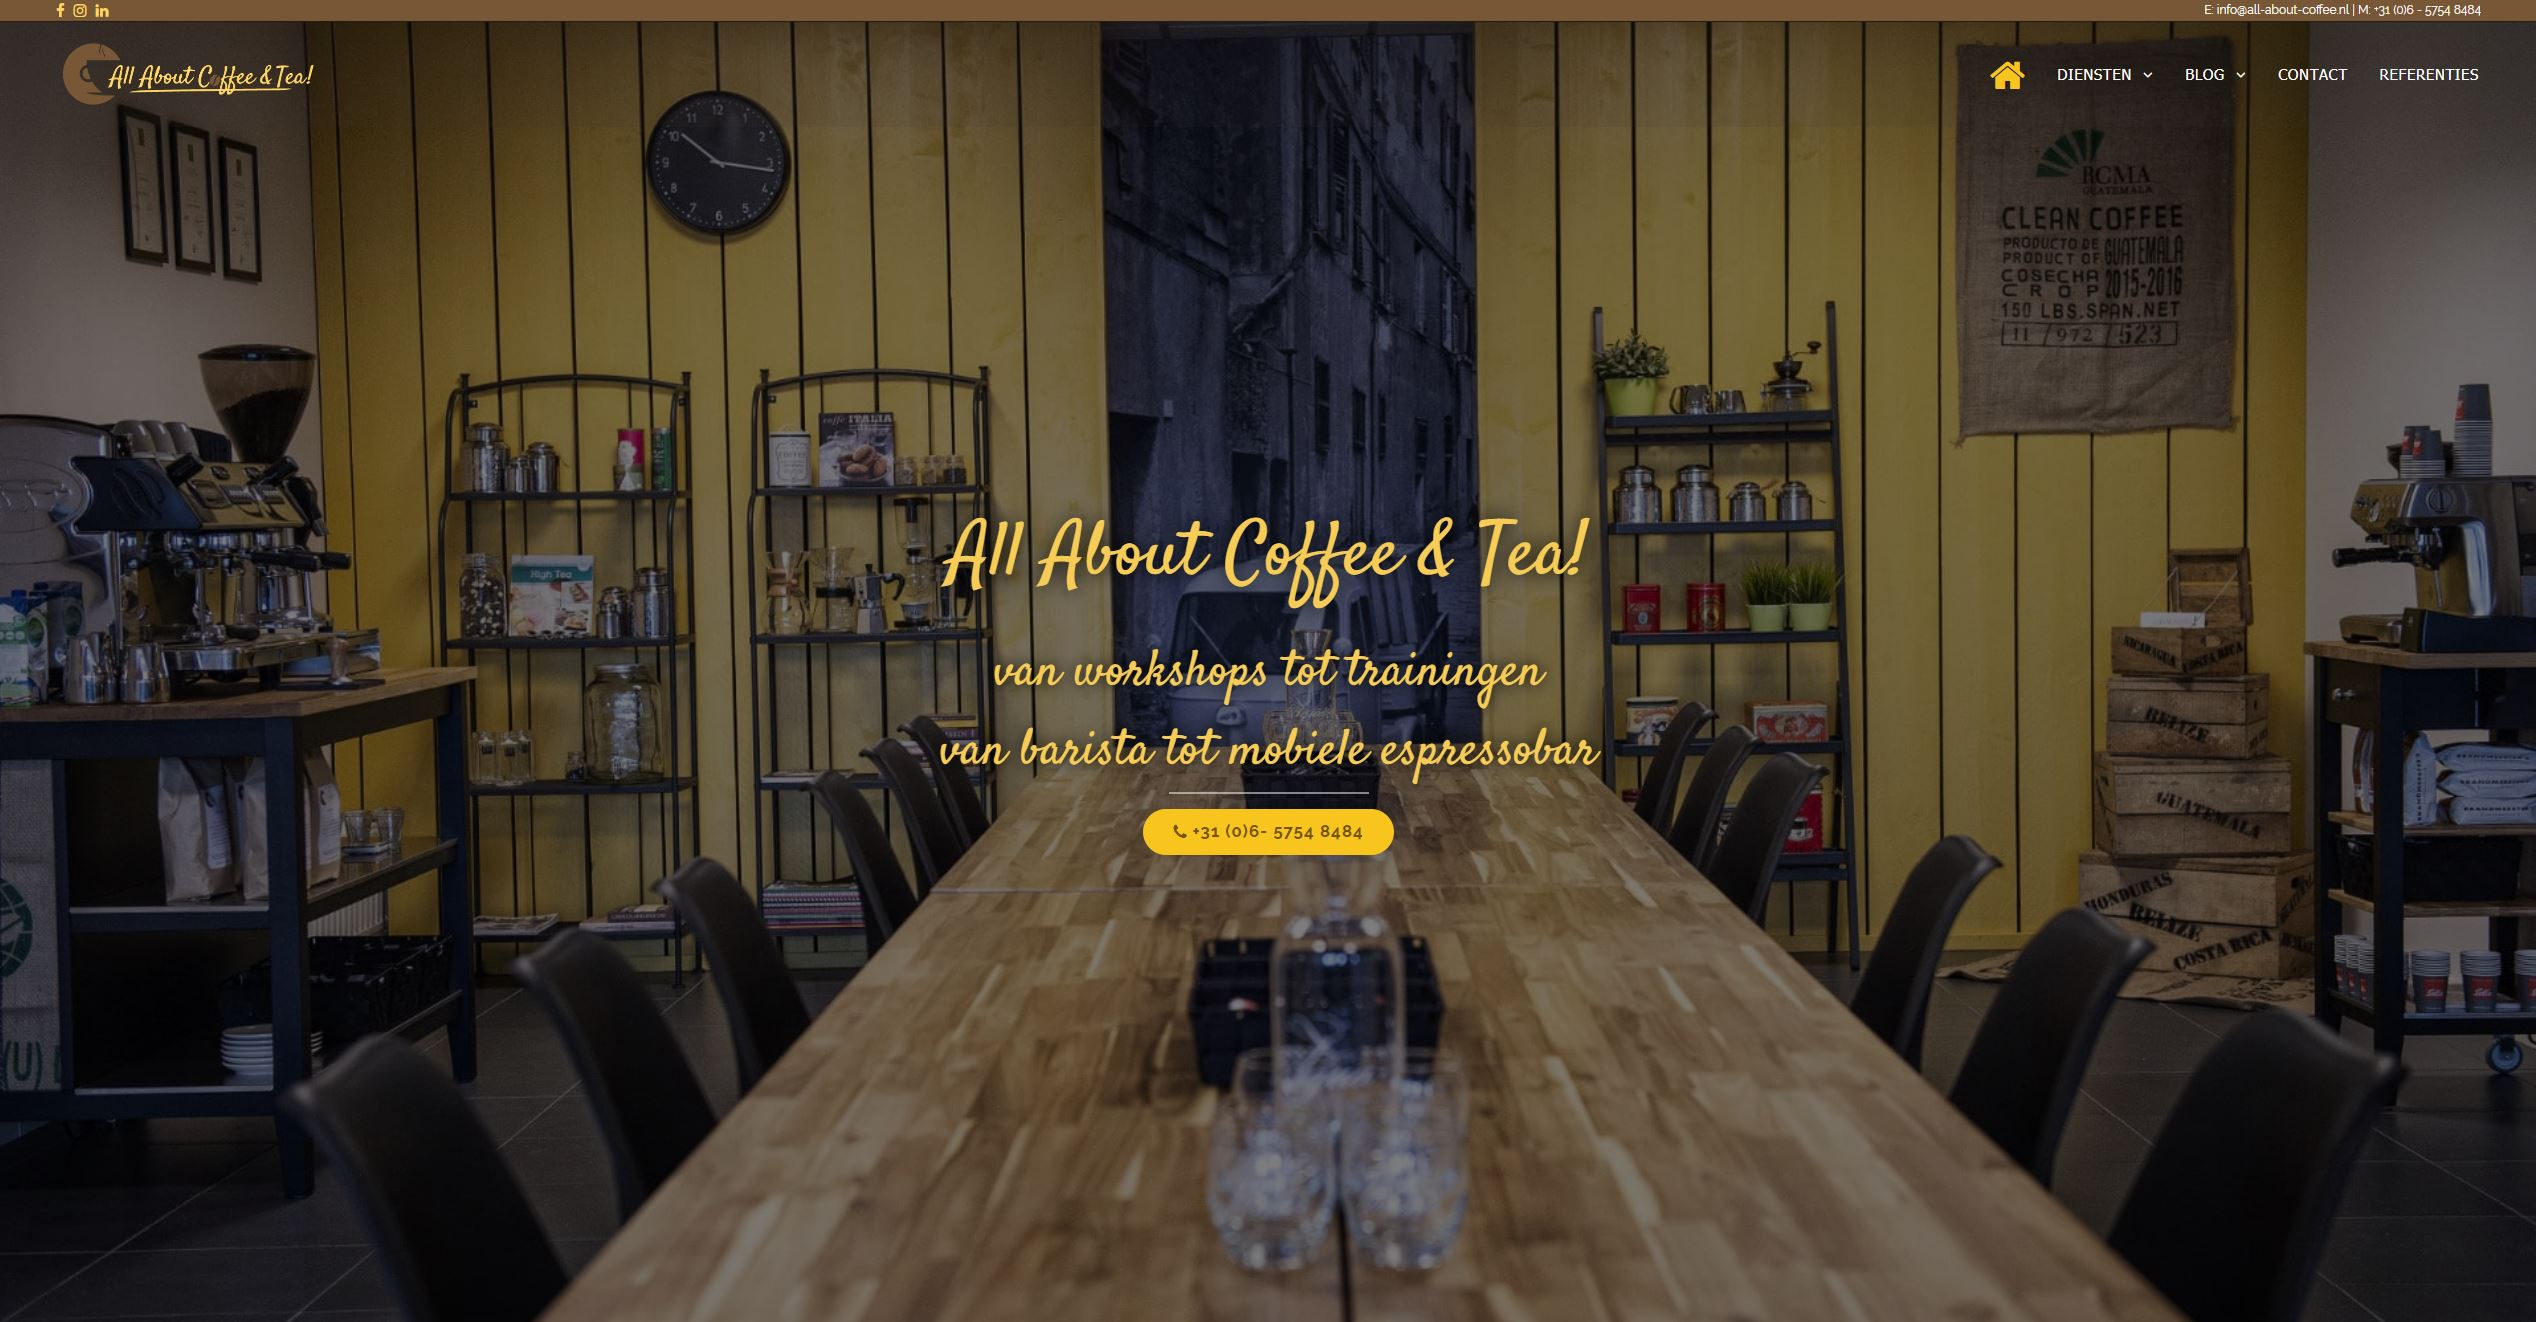 ALL ABOUT COFFEE AND TEA WEBSITE